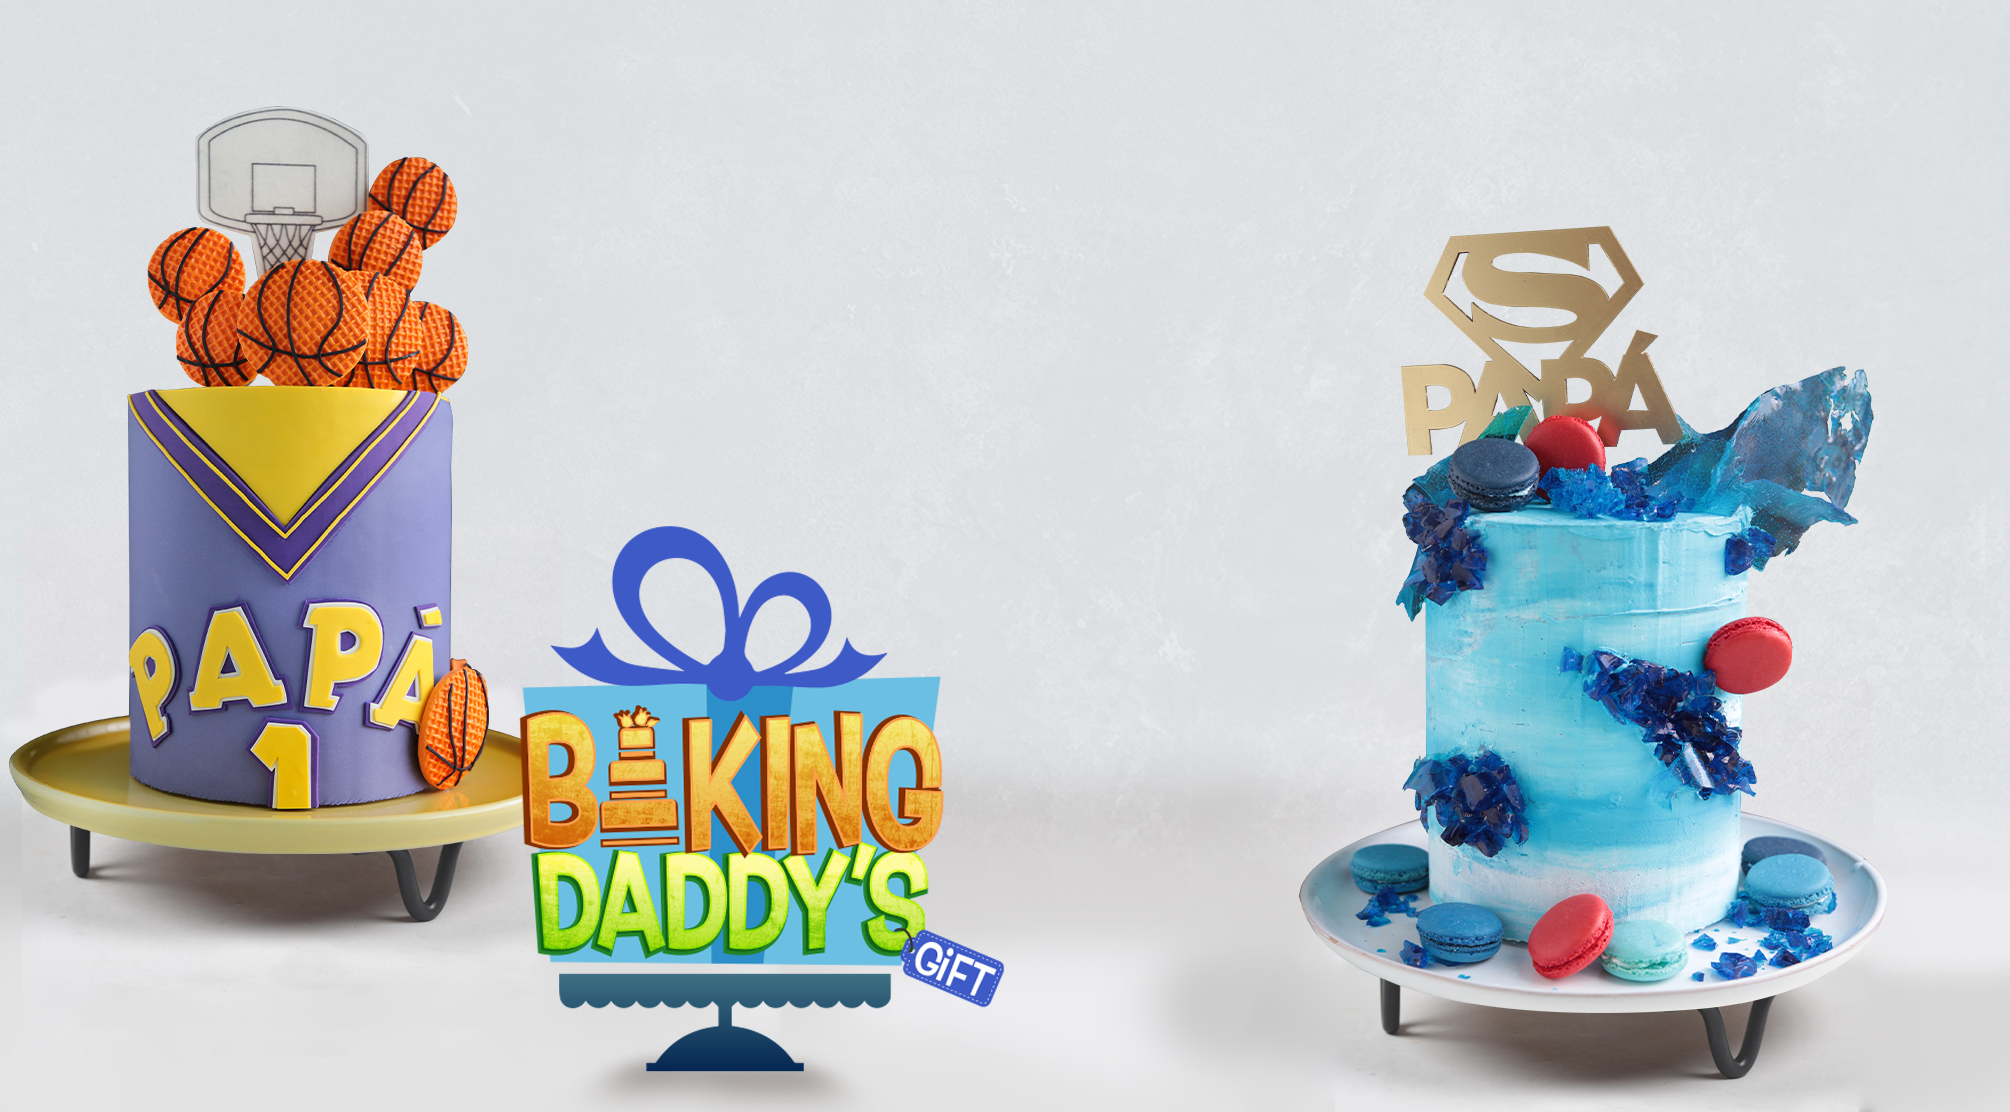 Baking daddy's gift